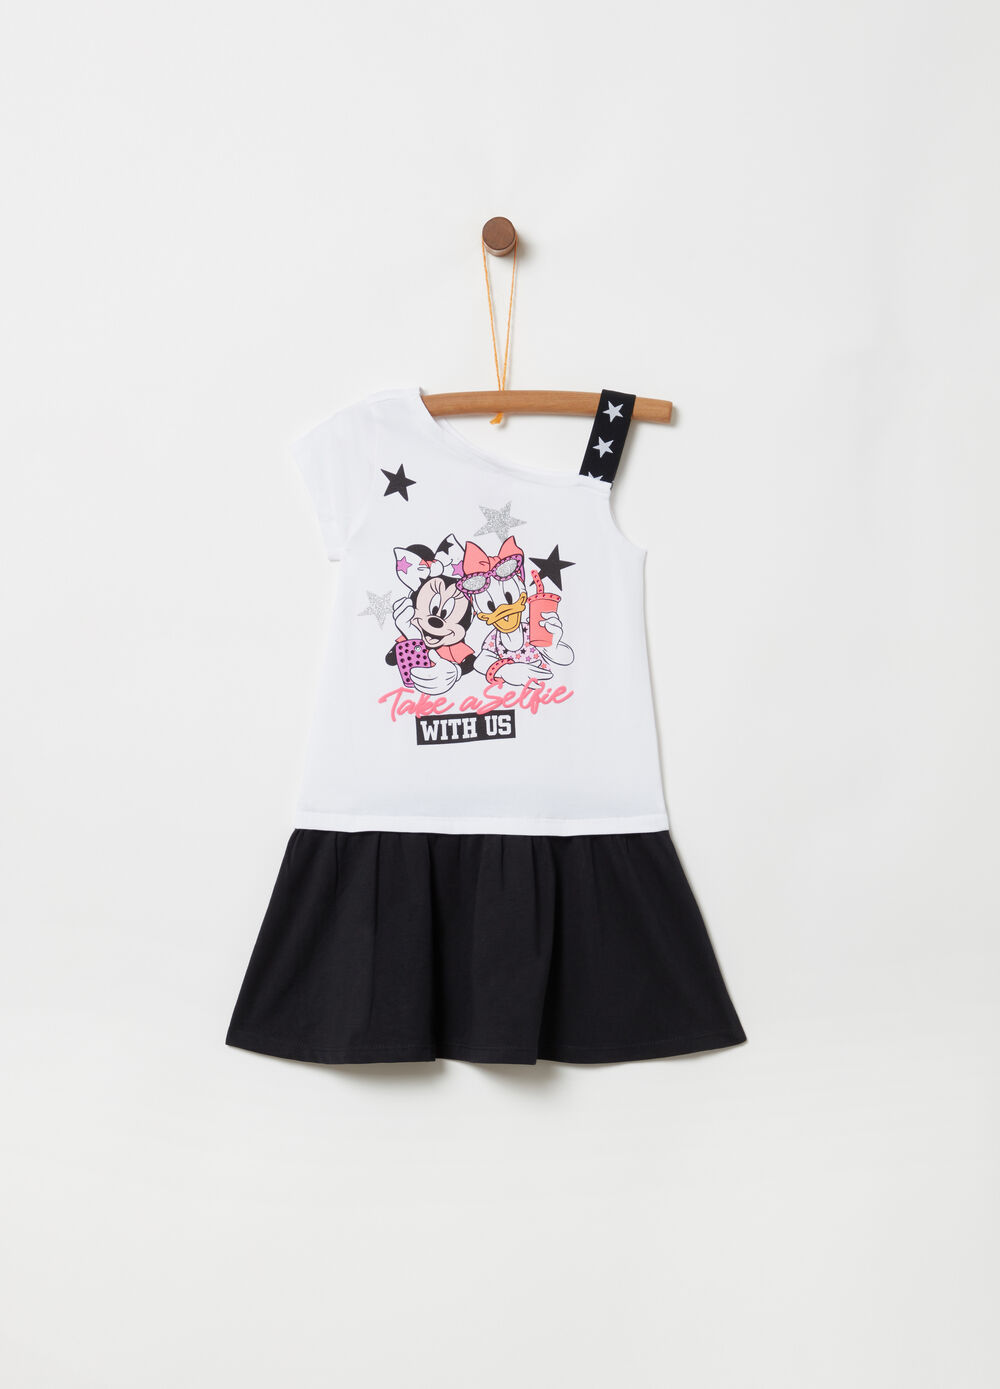 Disney Minnie Mouse and Daisy Duck stretch dress